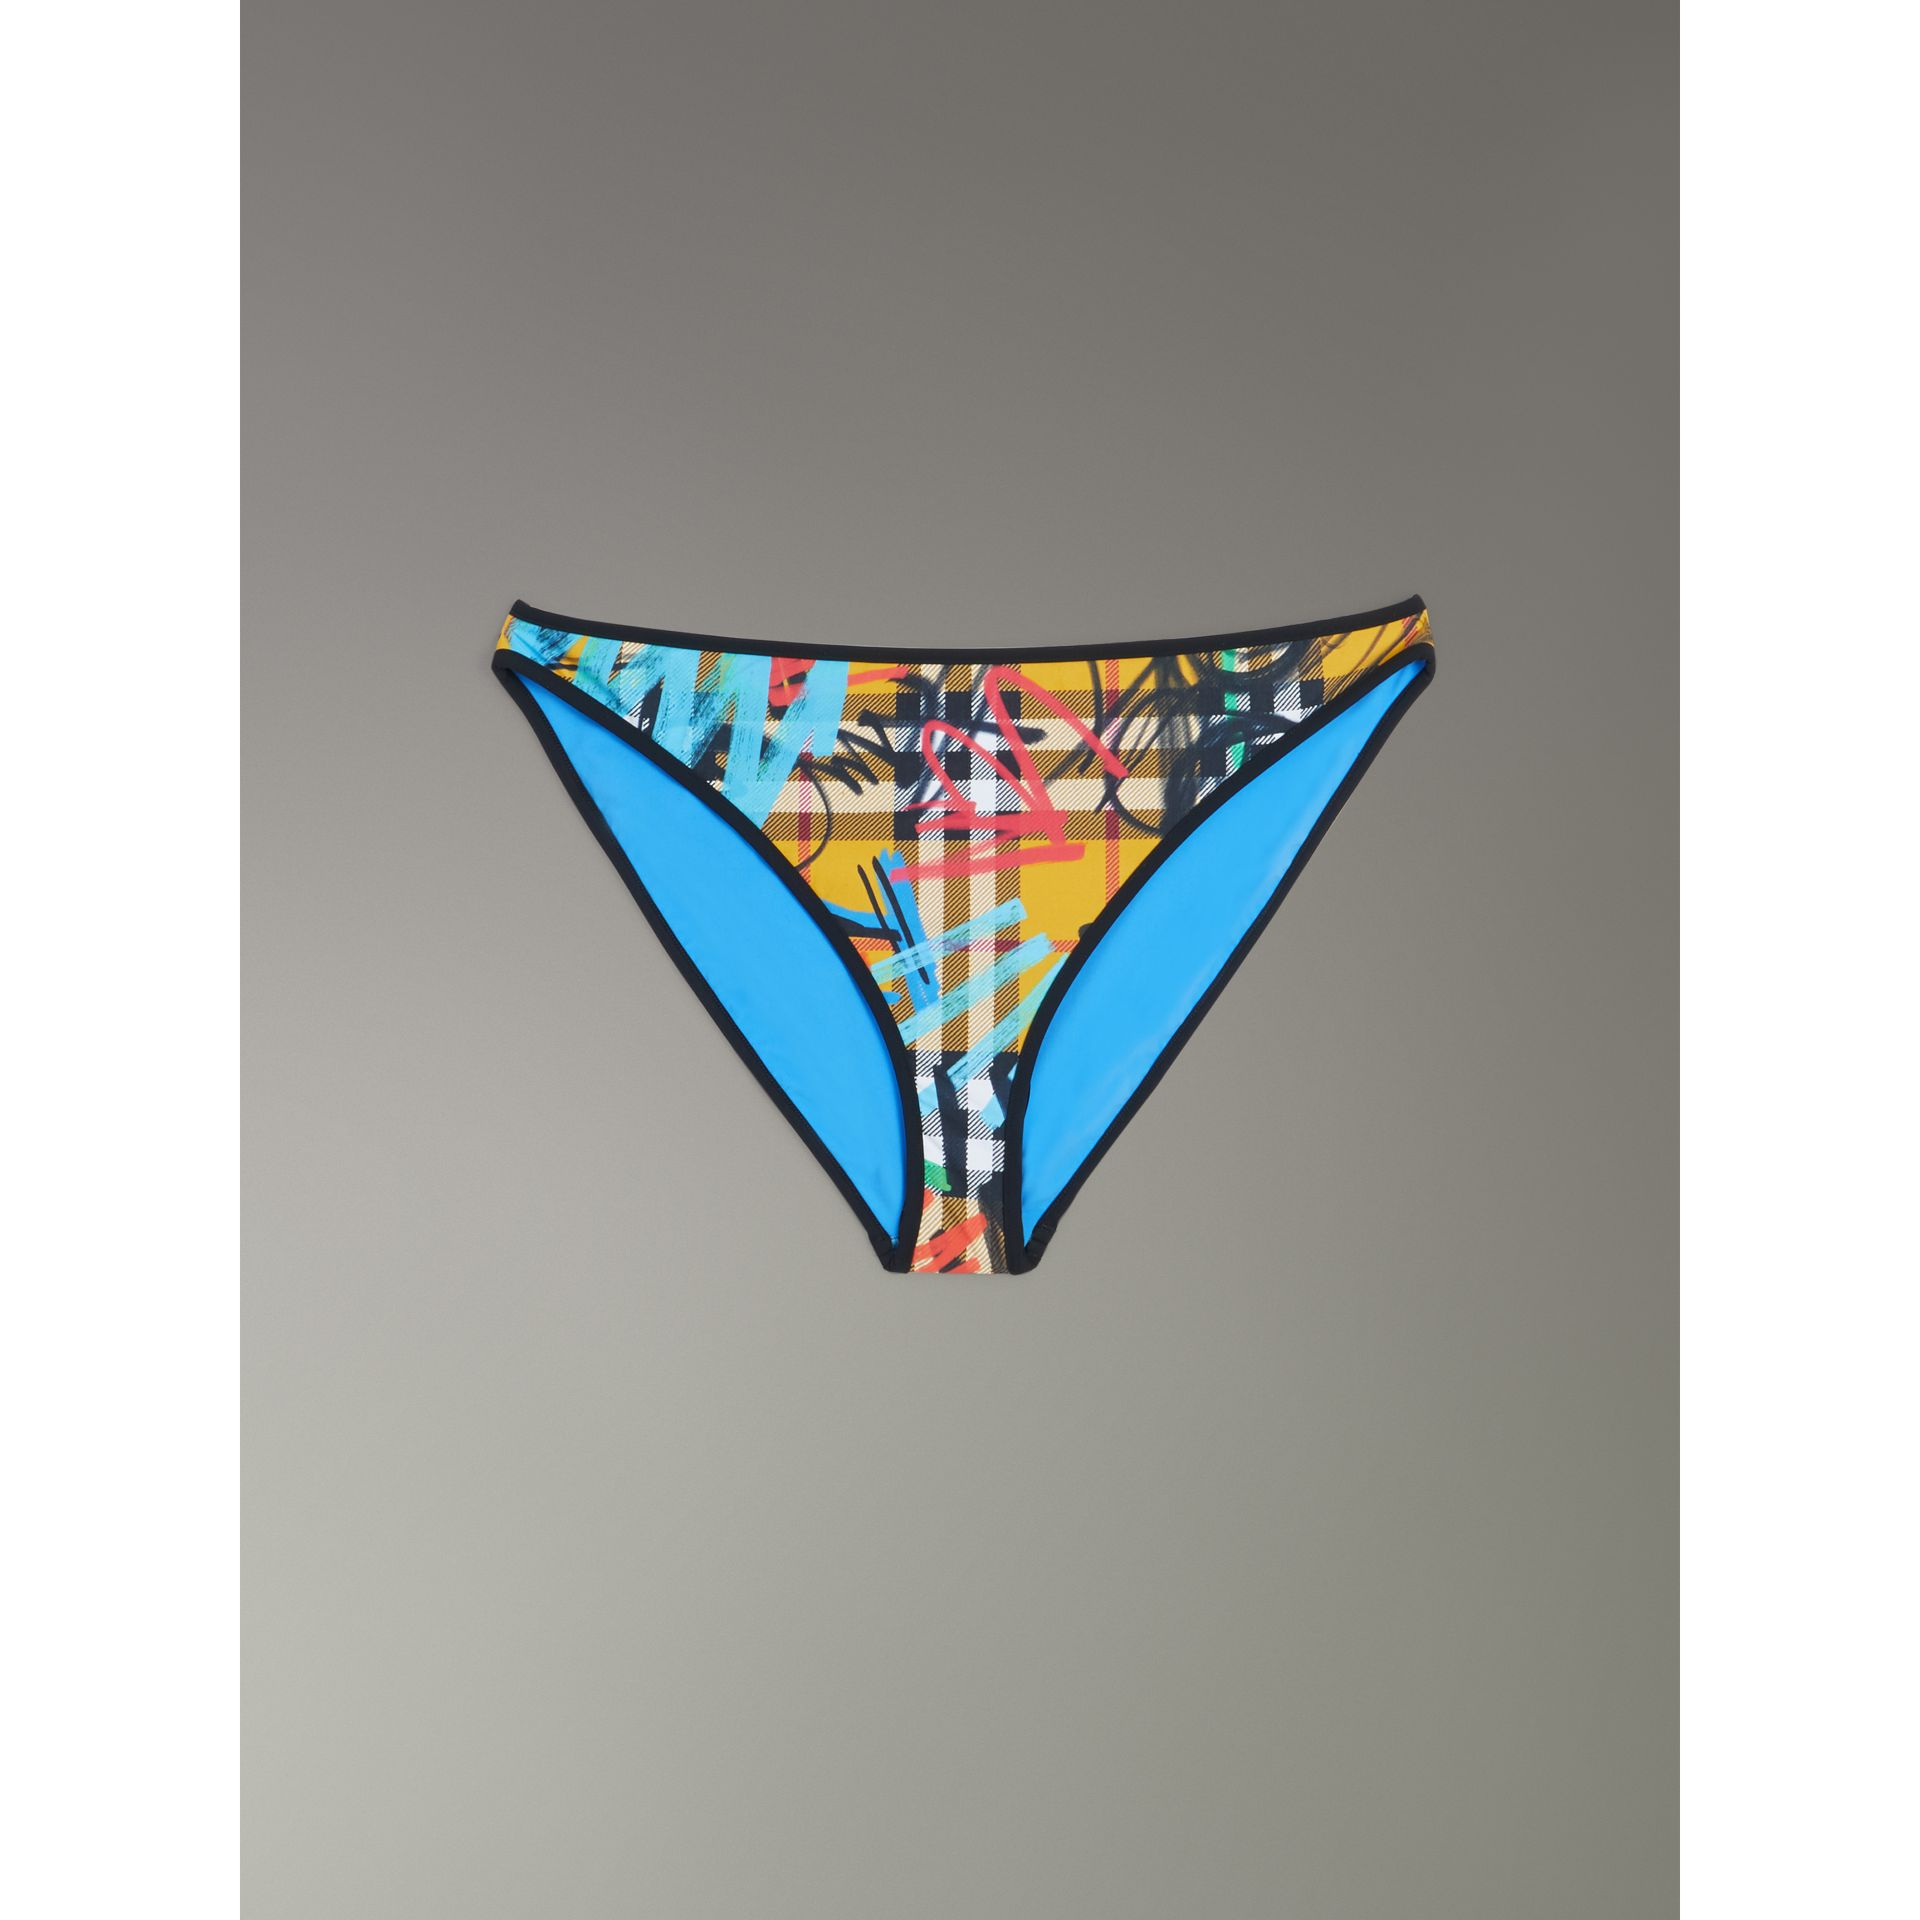 Graffiti Print Vintage Check Bikini in Amber Yellow - Women | Burberry United States - gallery image 2